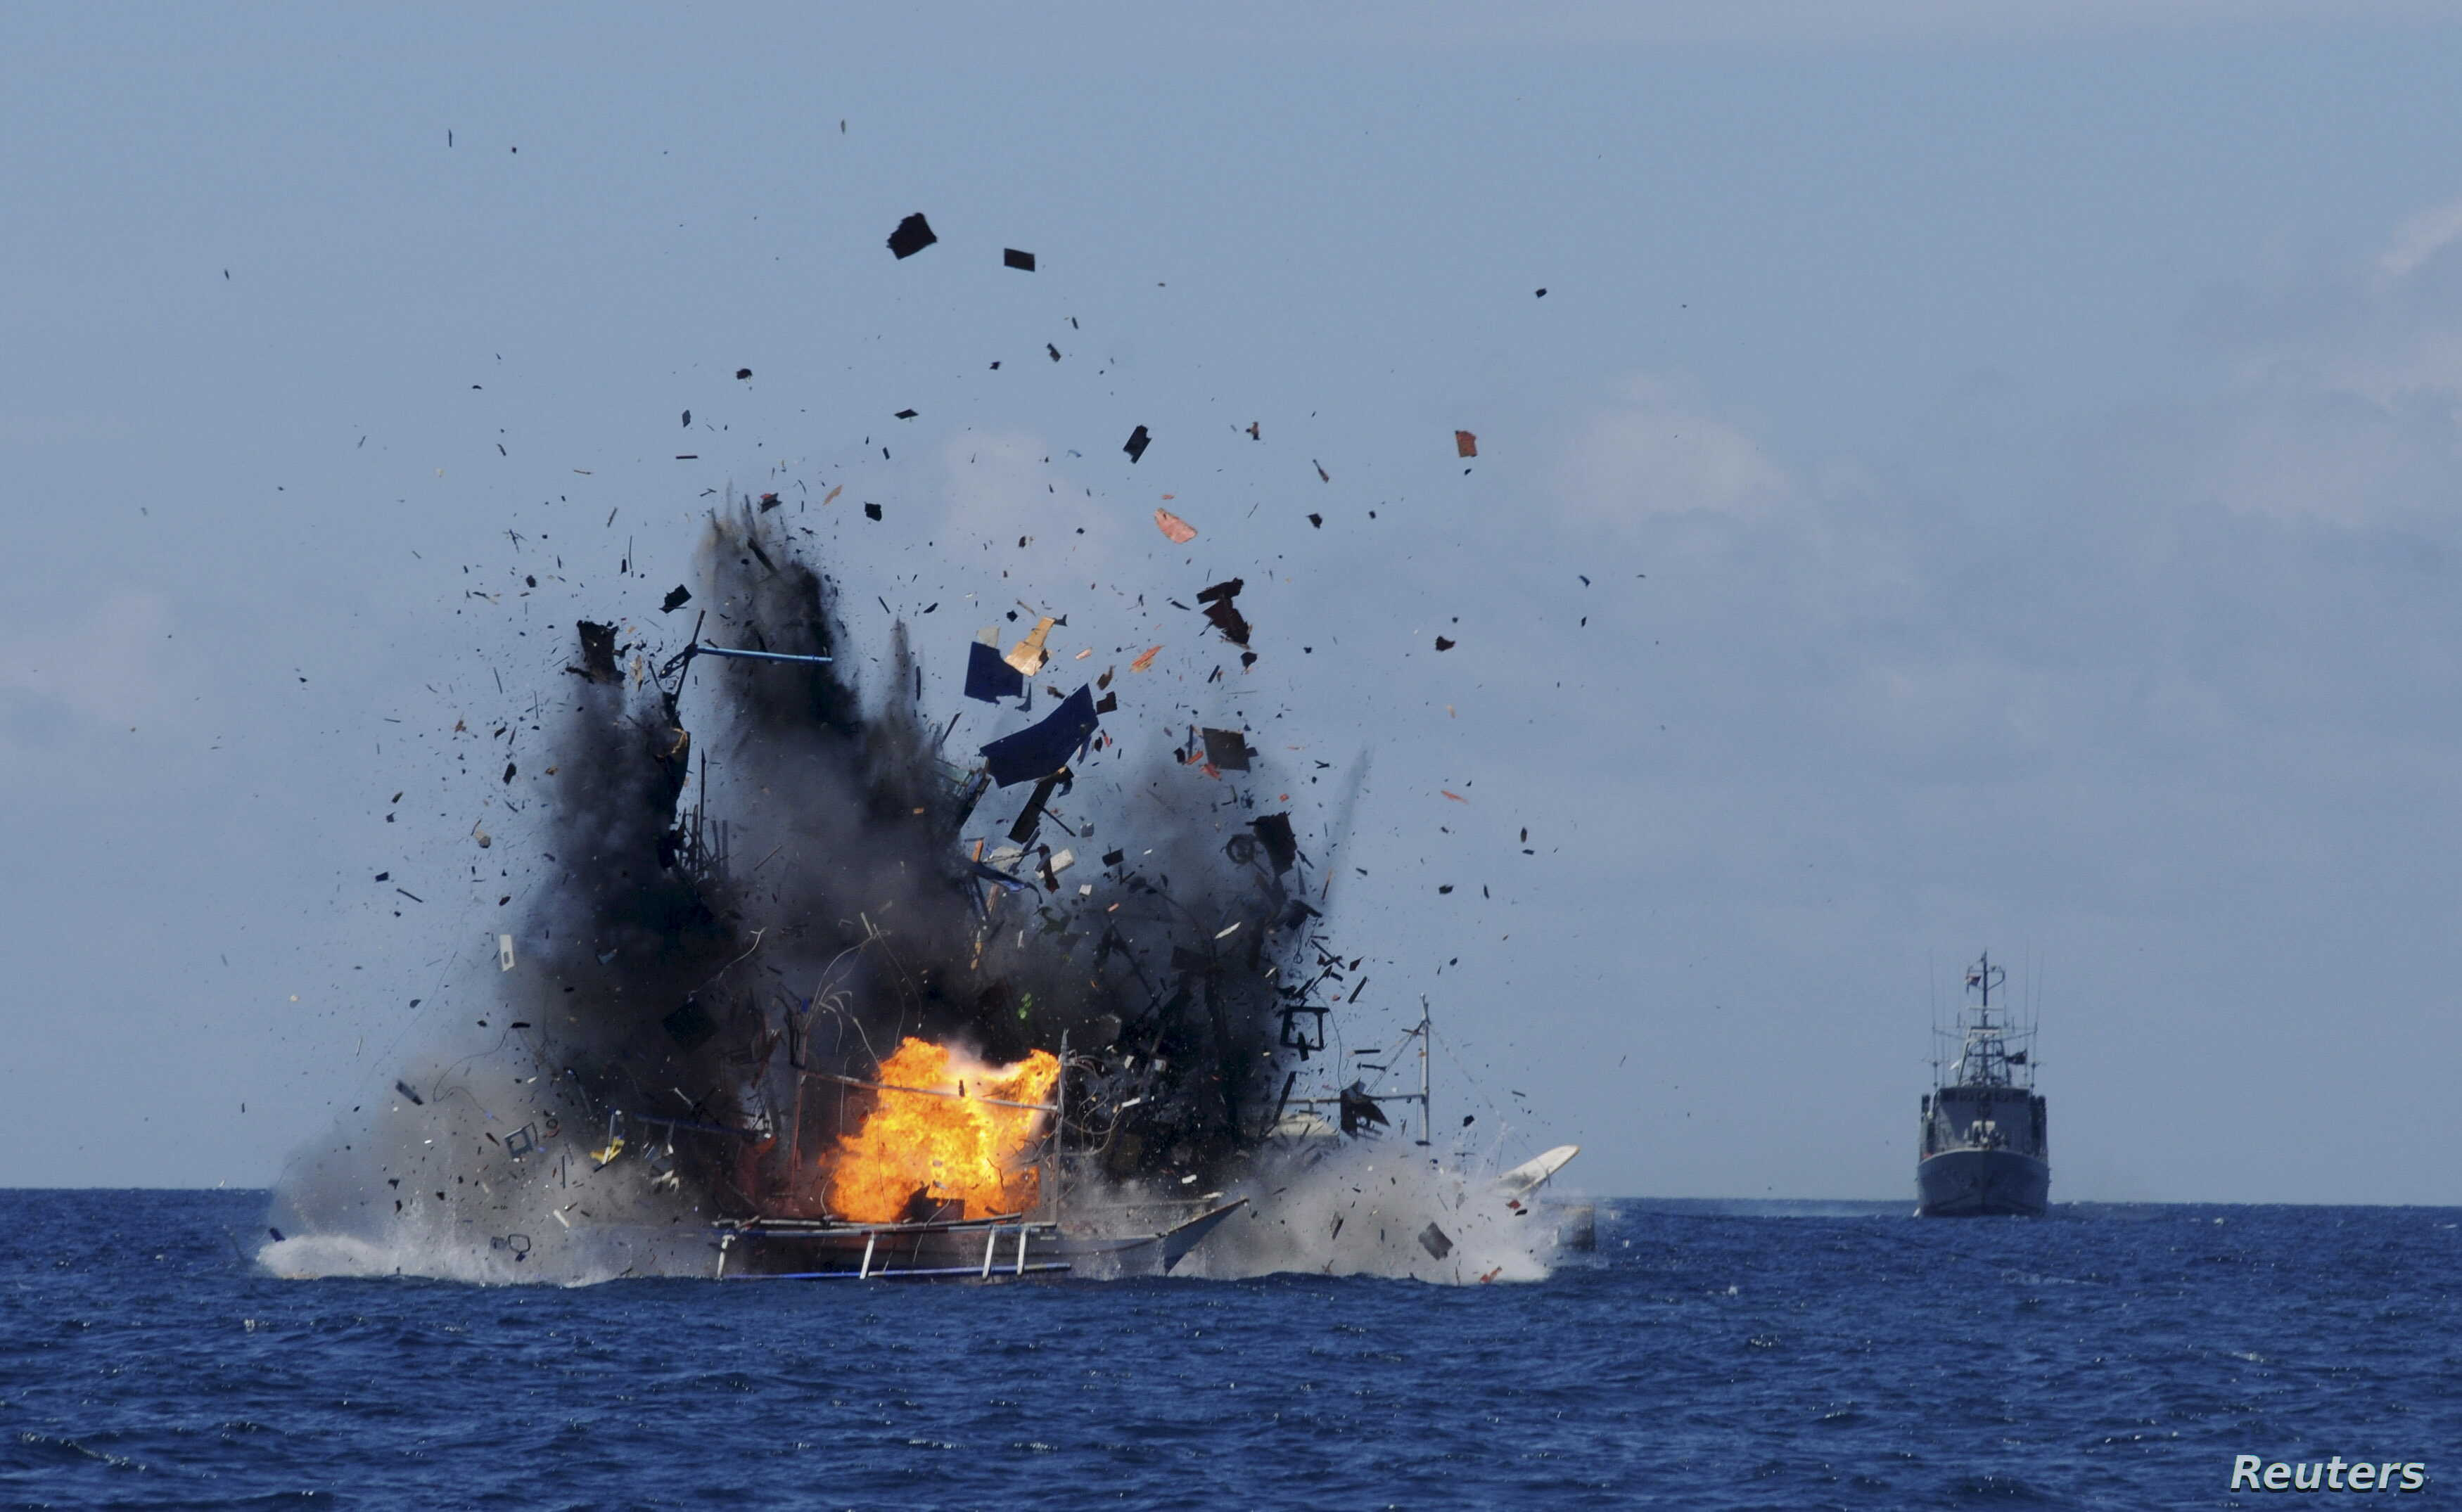 The Indonesian navy scuttles foreign fishing vessels caught fishing illegally in Indonesian waters near Bitung, North Sulawesi May 20, 2015 in the is photo taken by Antara Foto.